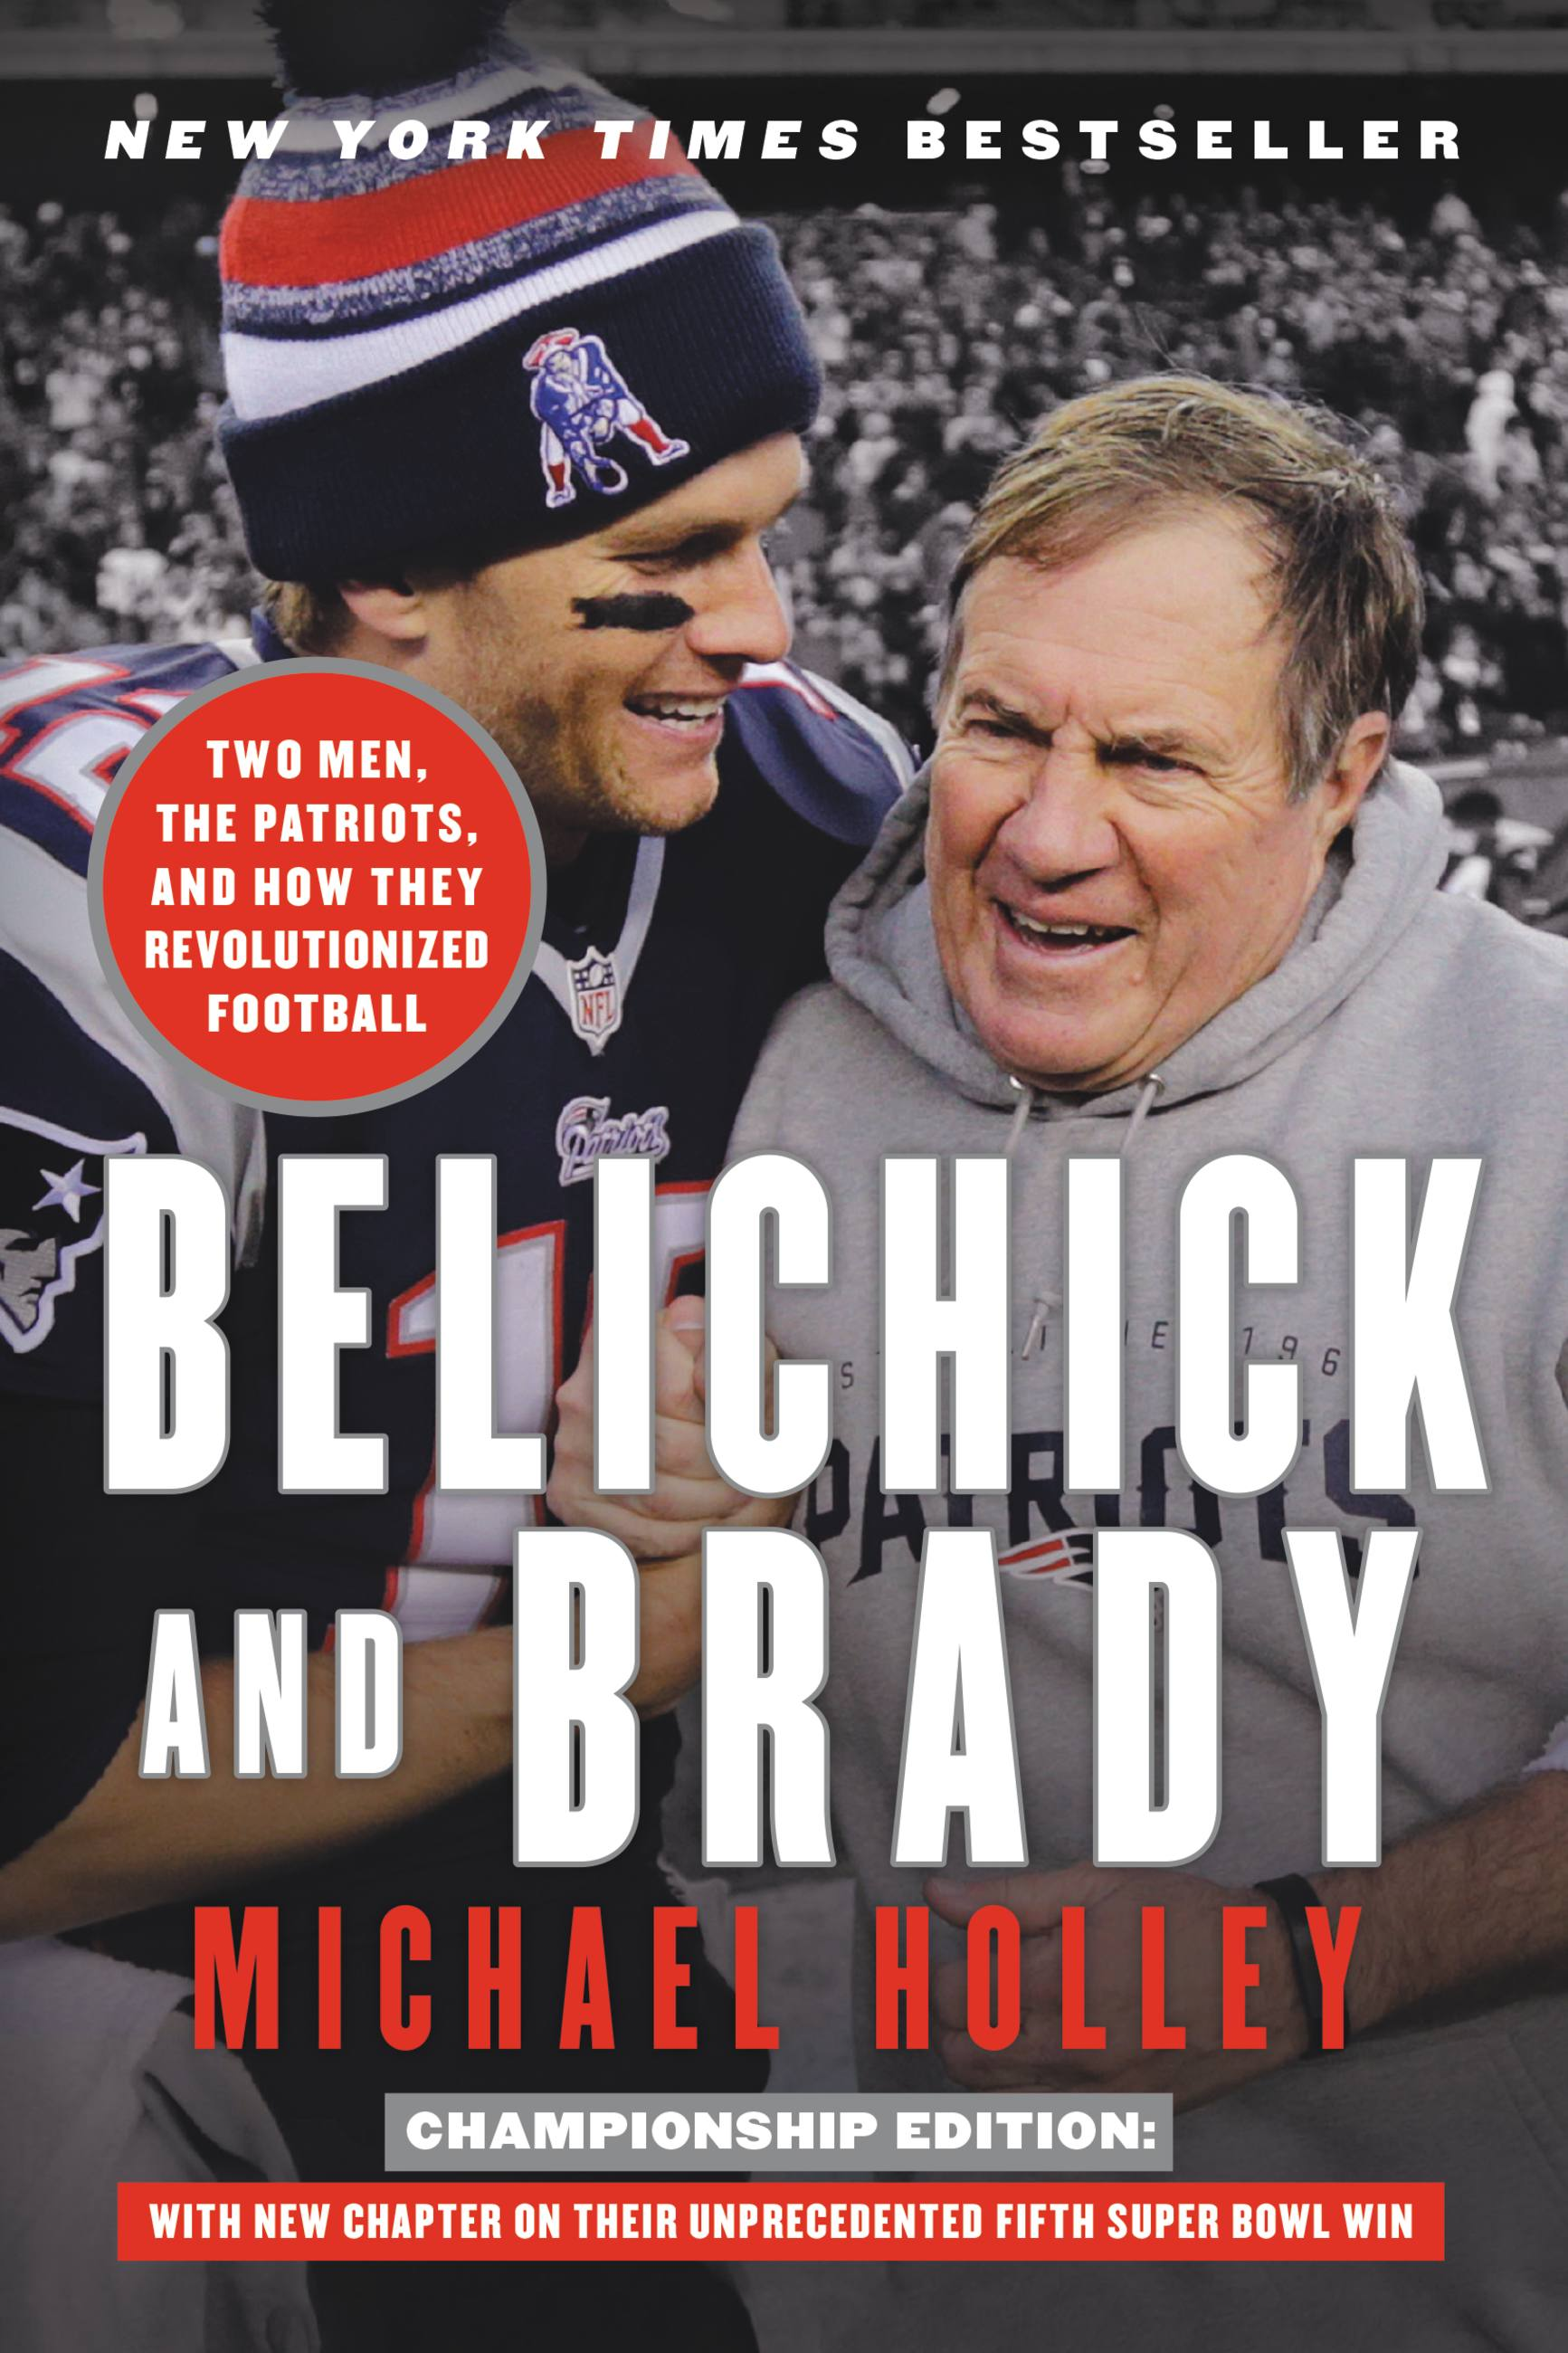 Belichick and Brady Two Men, the Patriots, and How They Revolutionized Football